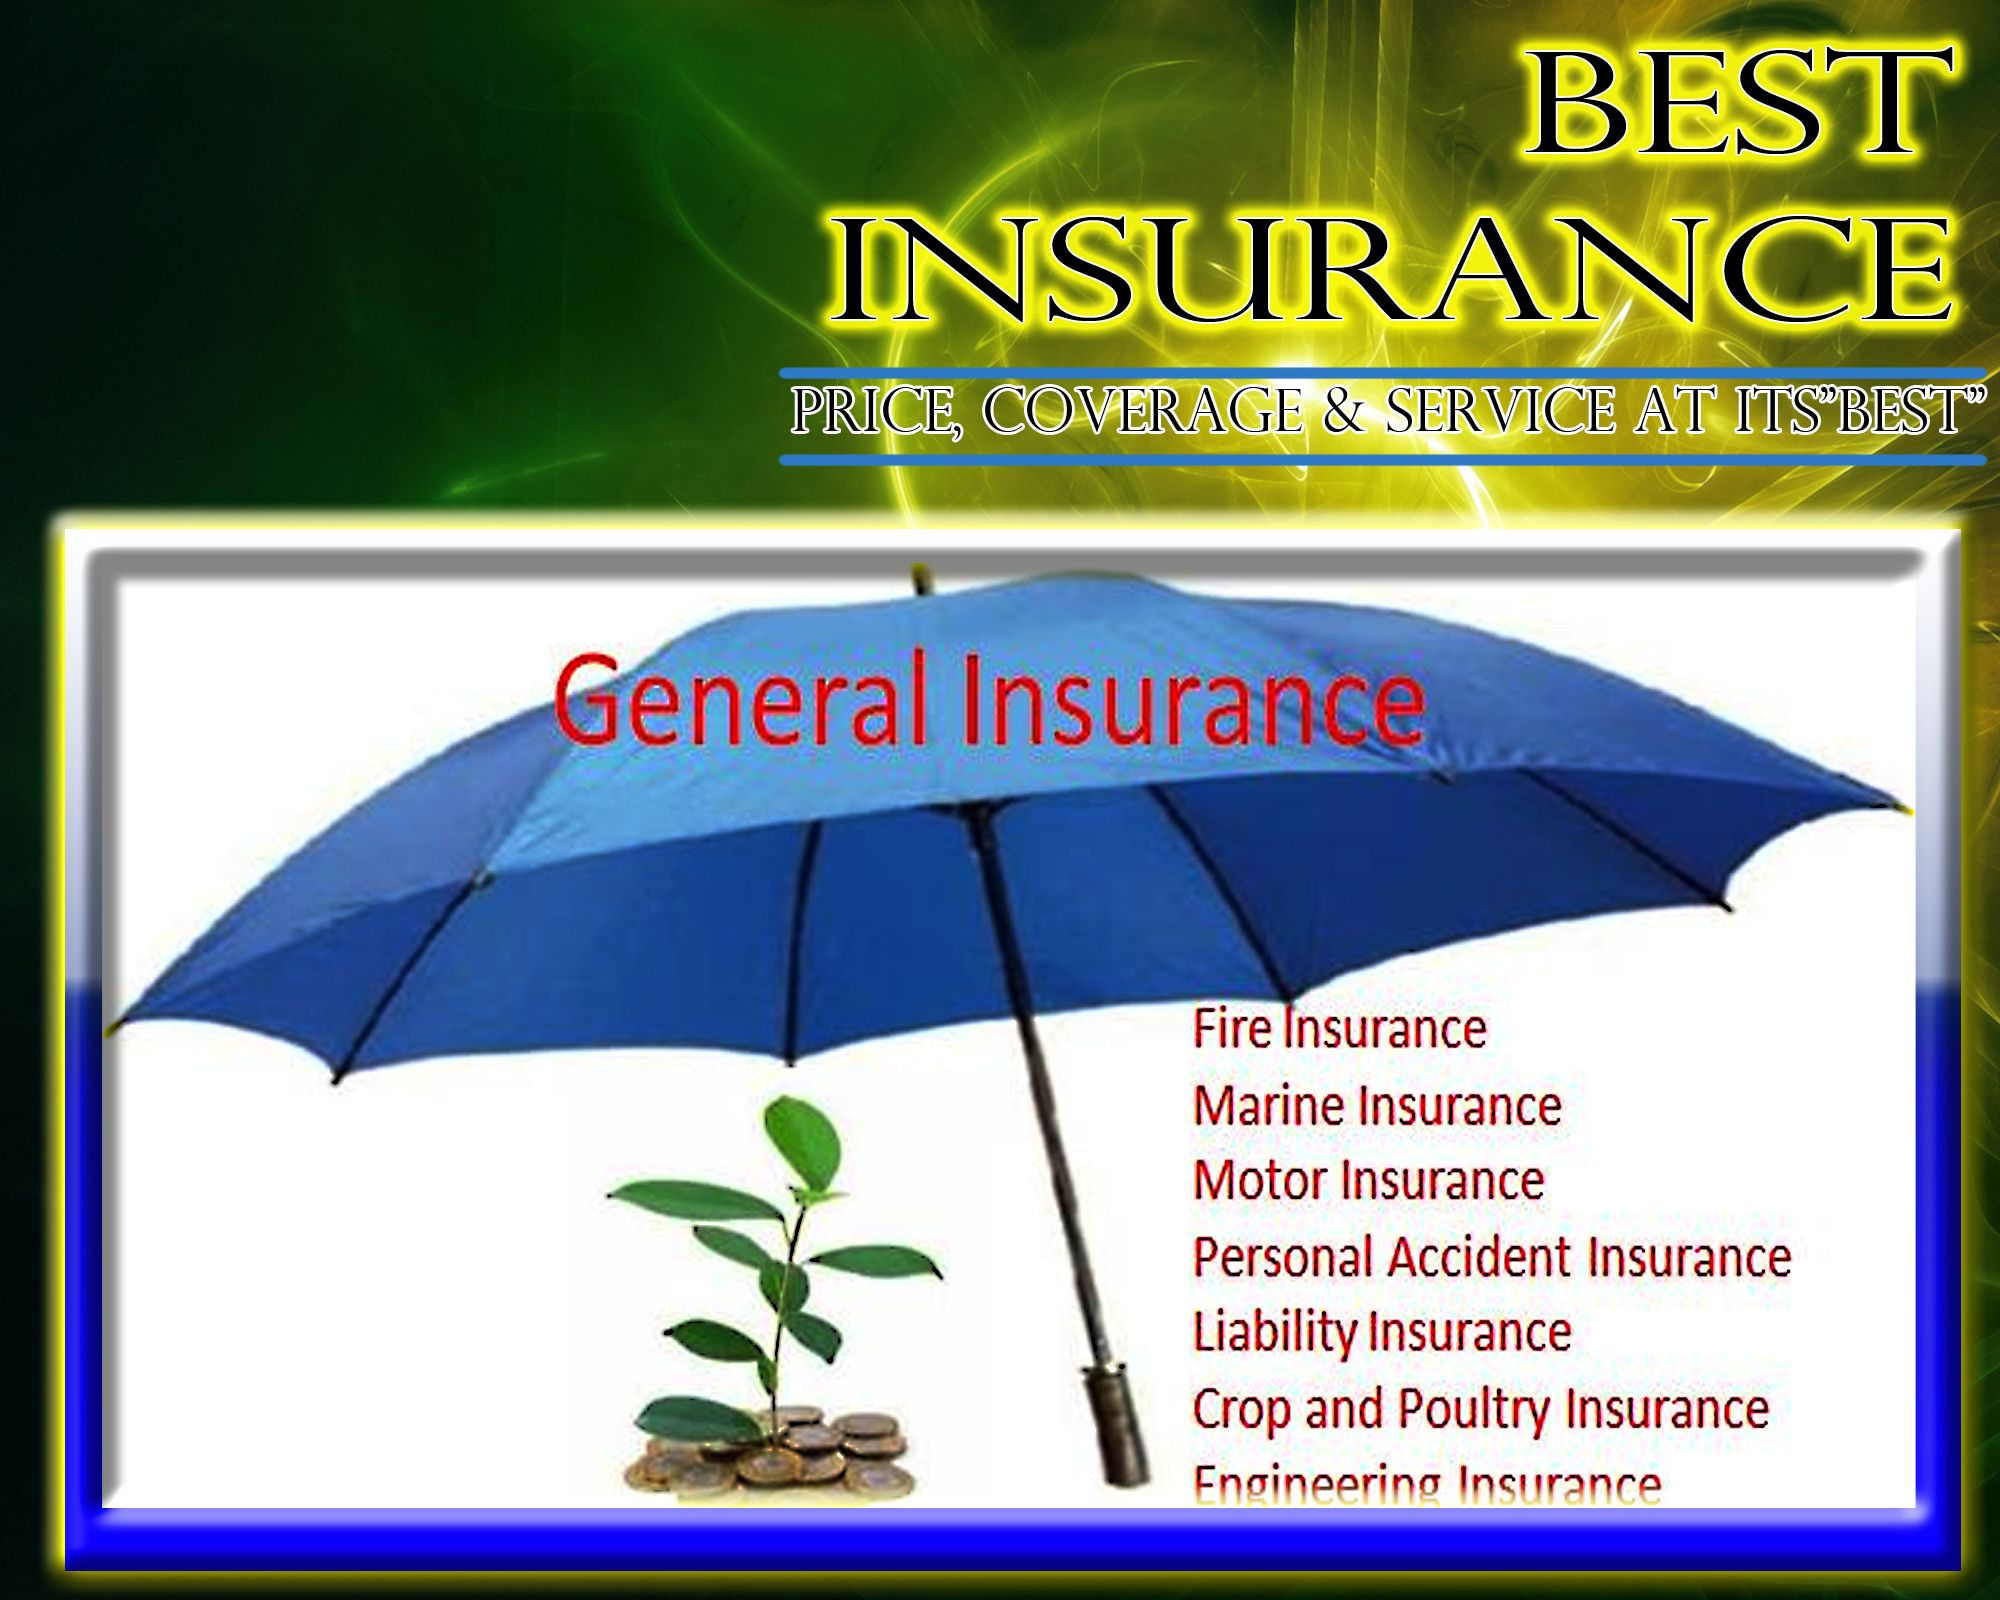 The General Auto Quote Stunning Autoinsuranceft.lauderdale General Insurance  General Insurance . 2017